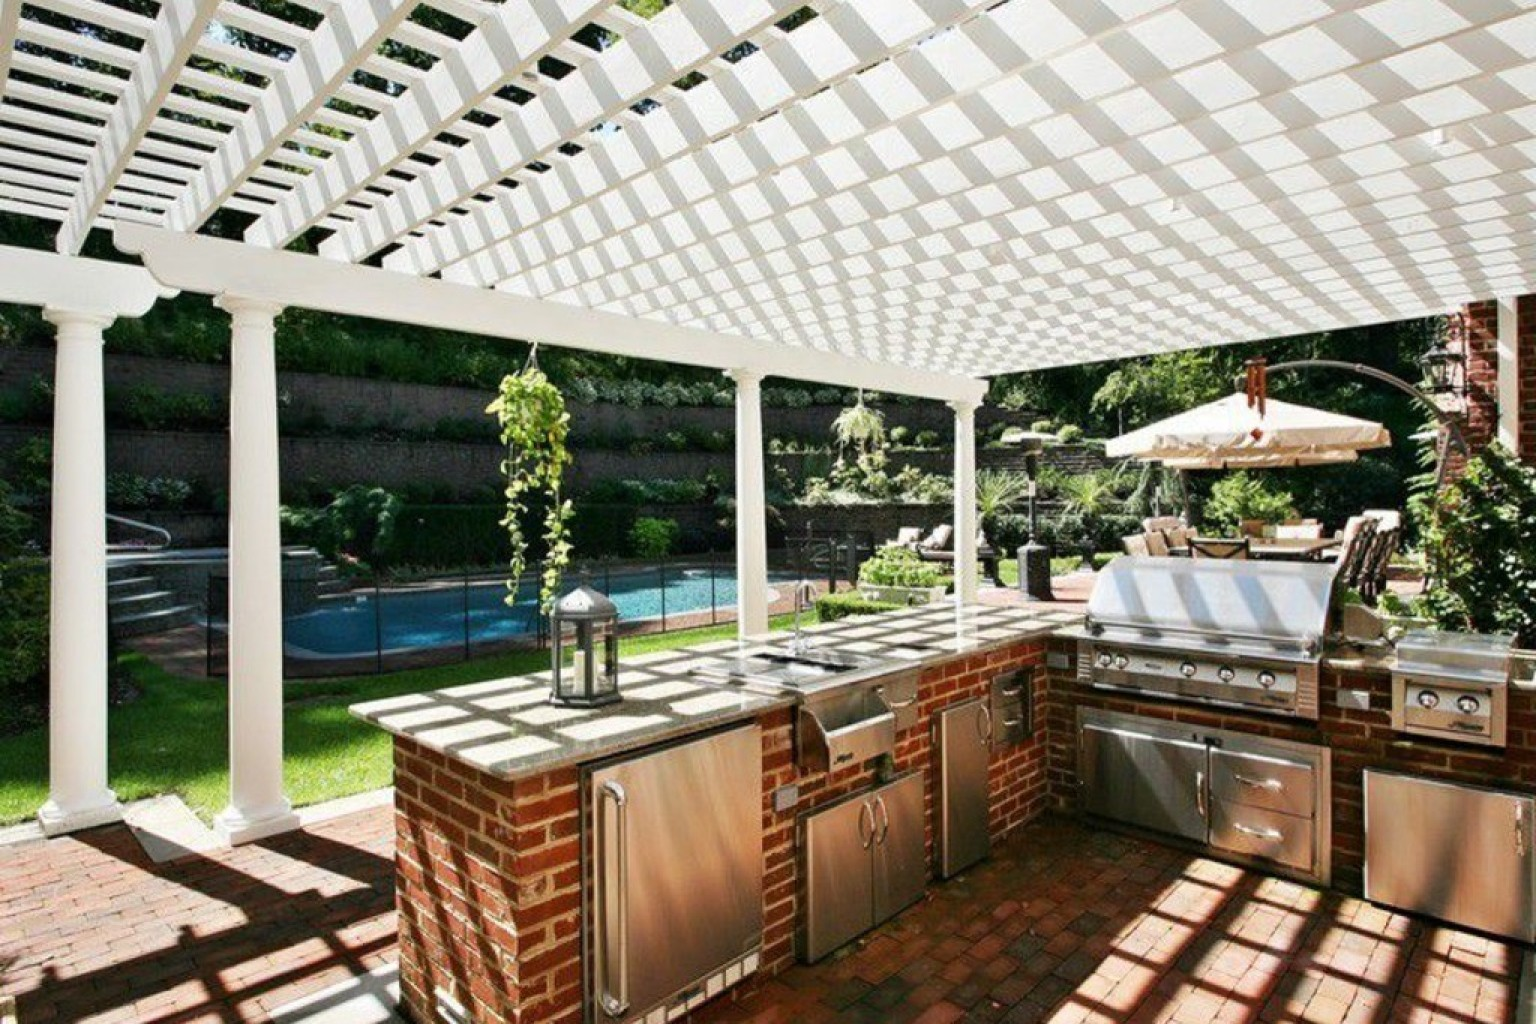 14 Incredible Outdoor Kitchens That Go Way Beyond Grills